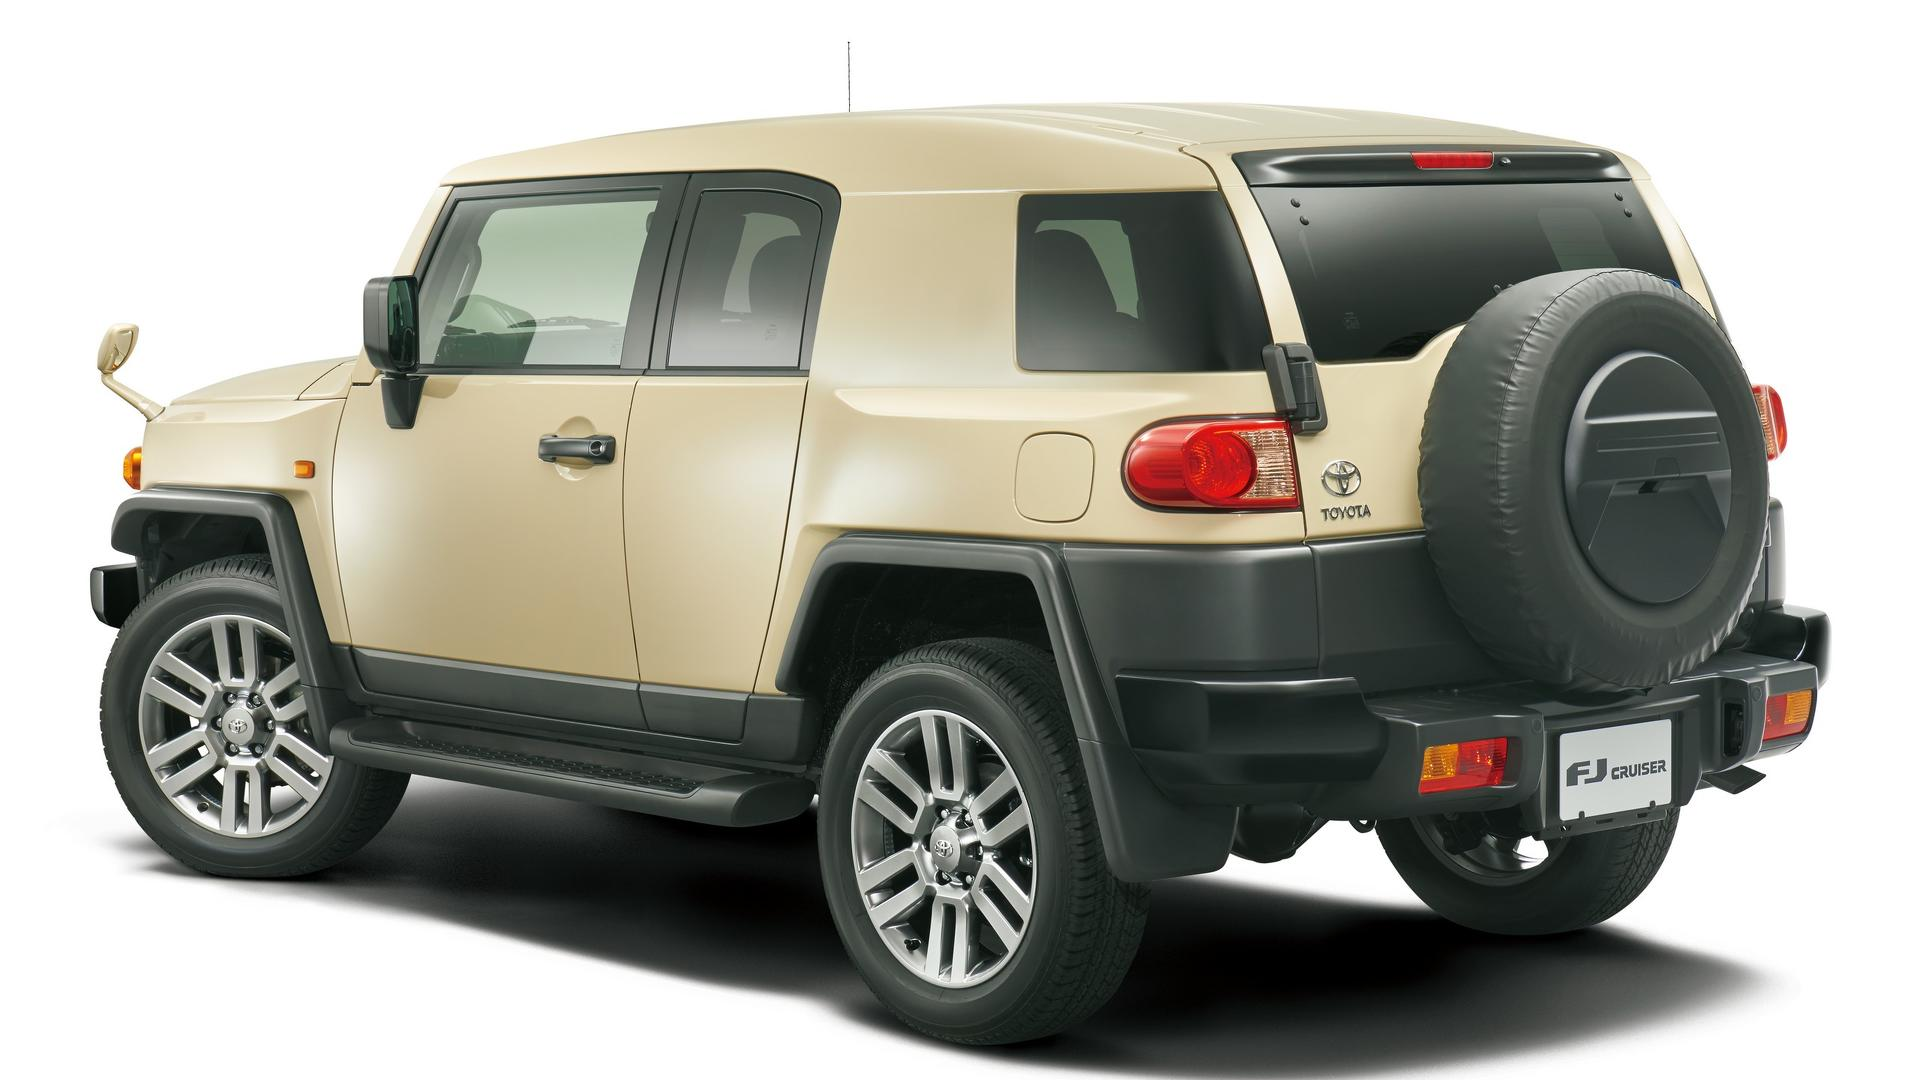 2017 Toyota Fj Cruiser Final Edition An Spec Model